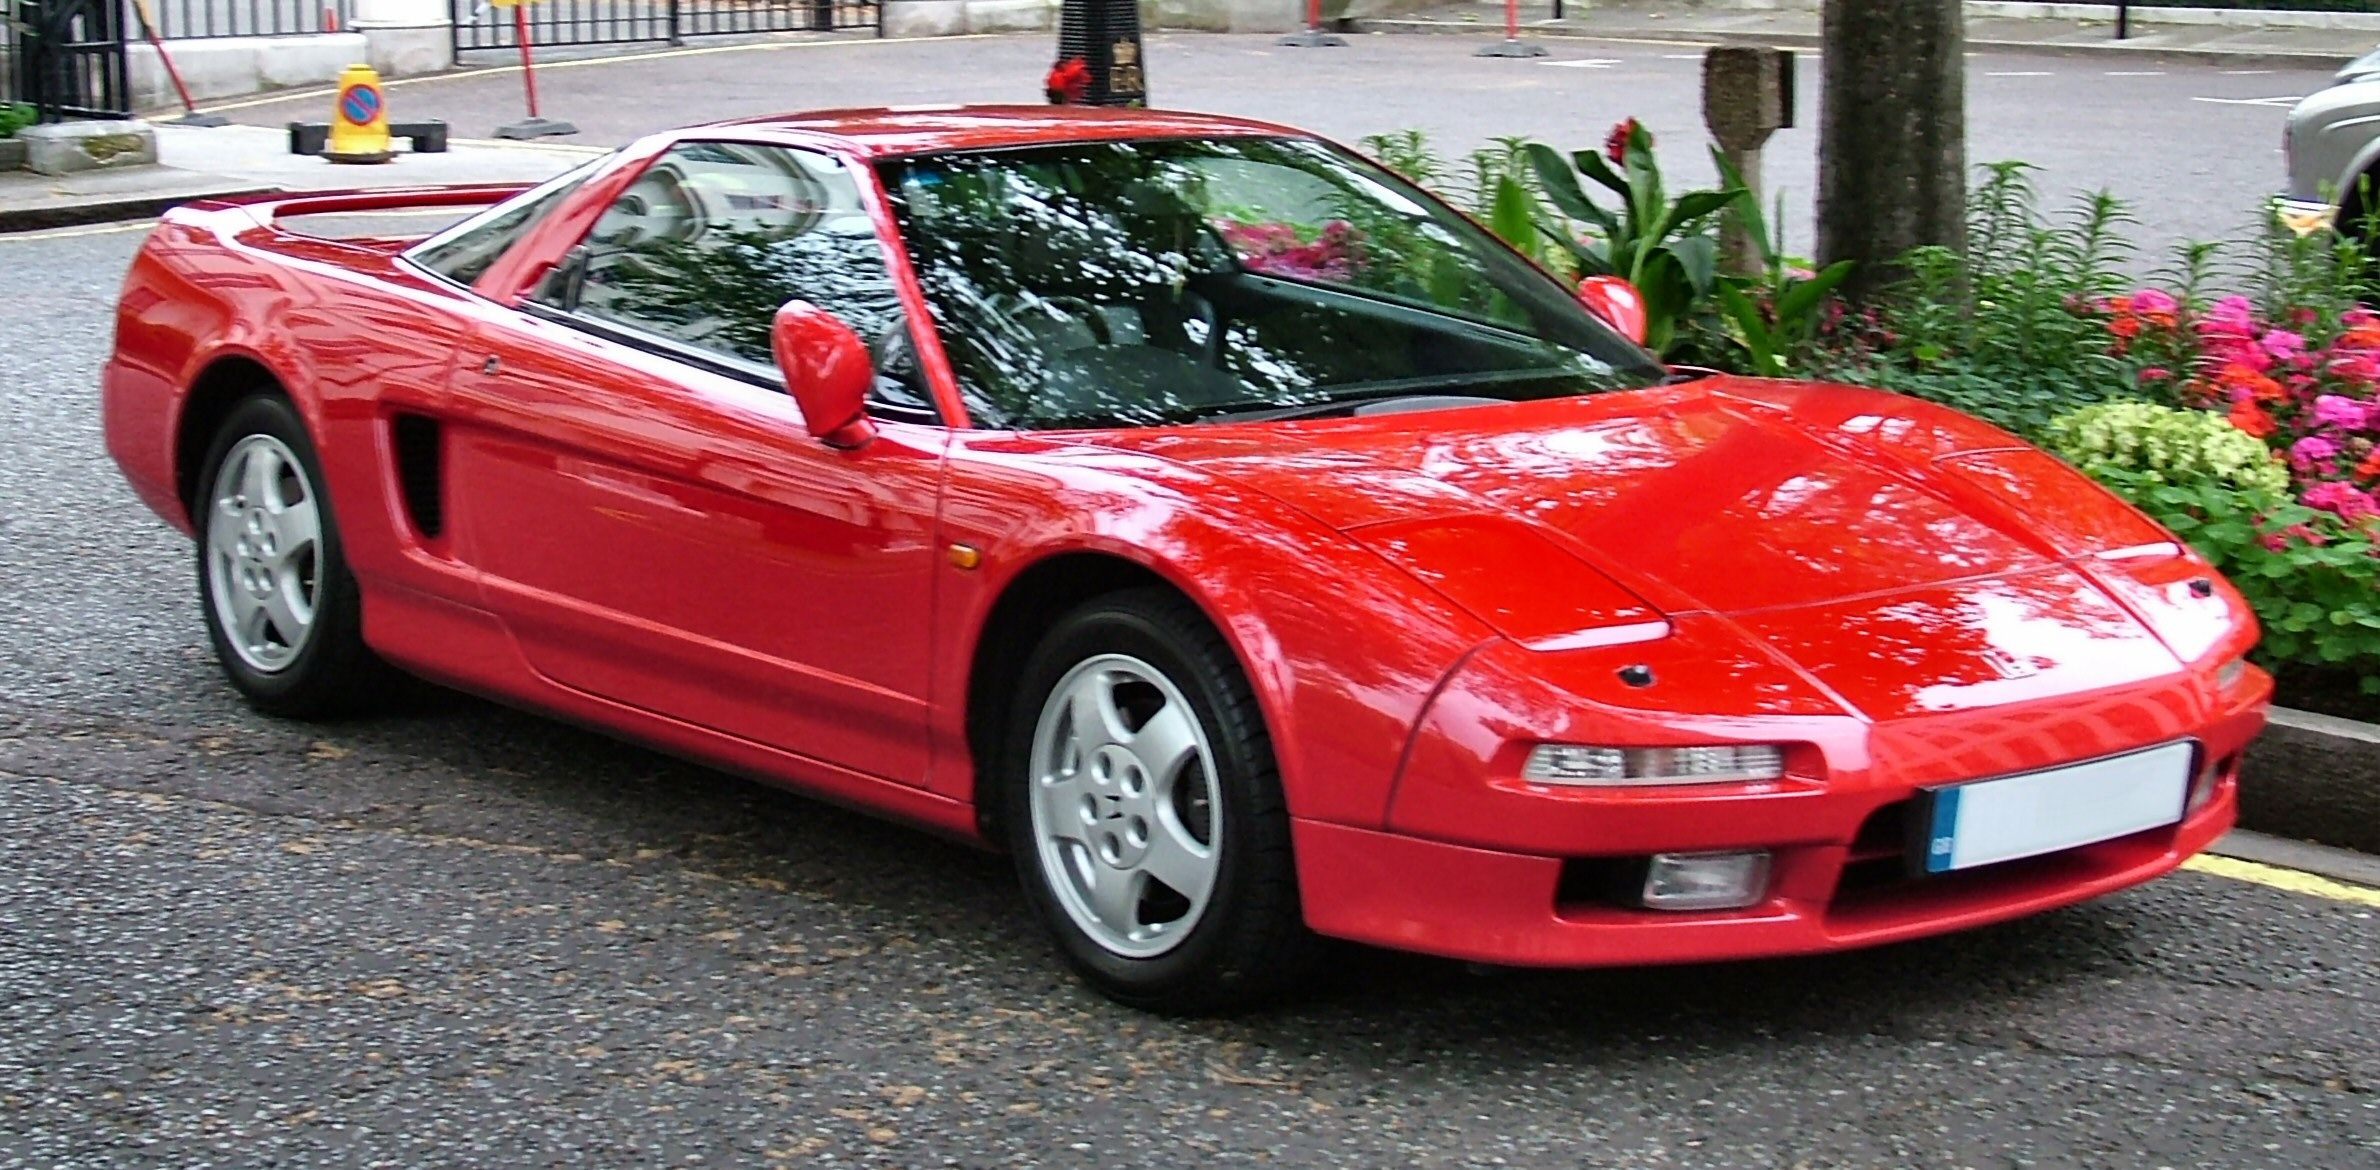 Honda nsx is a activities car from the japanese people automatic large that was sold in the international marketplaces from